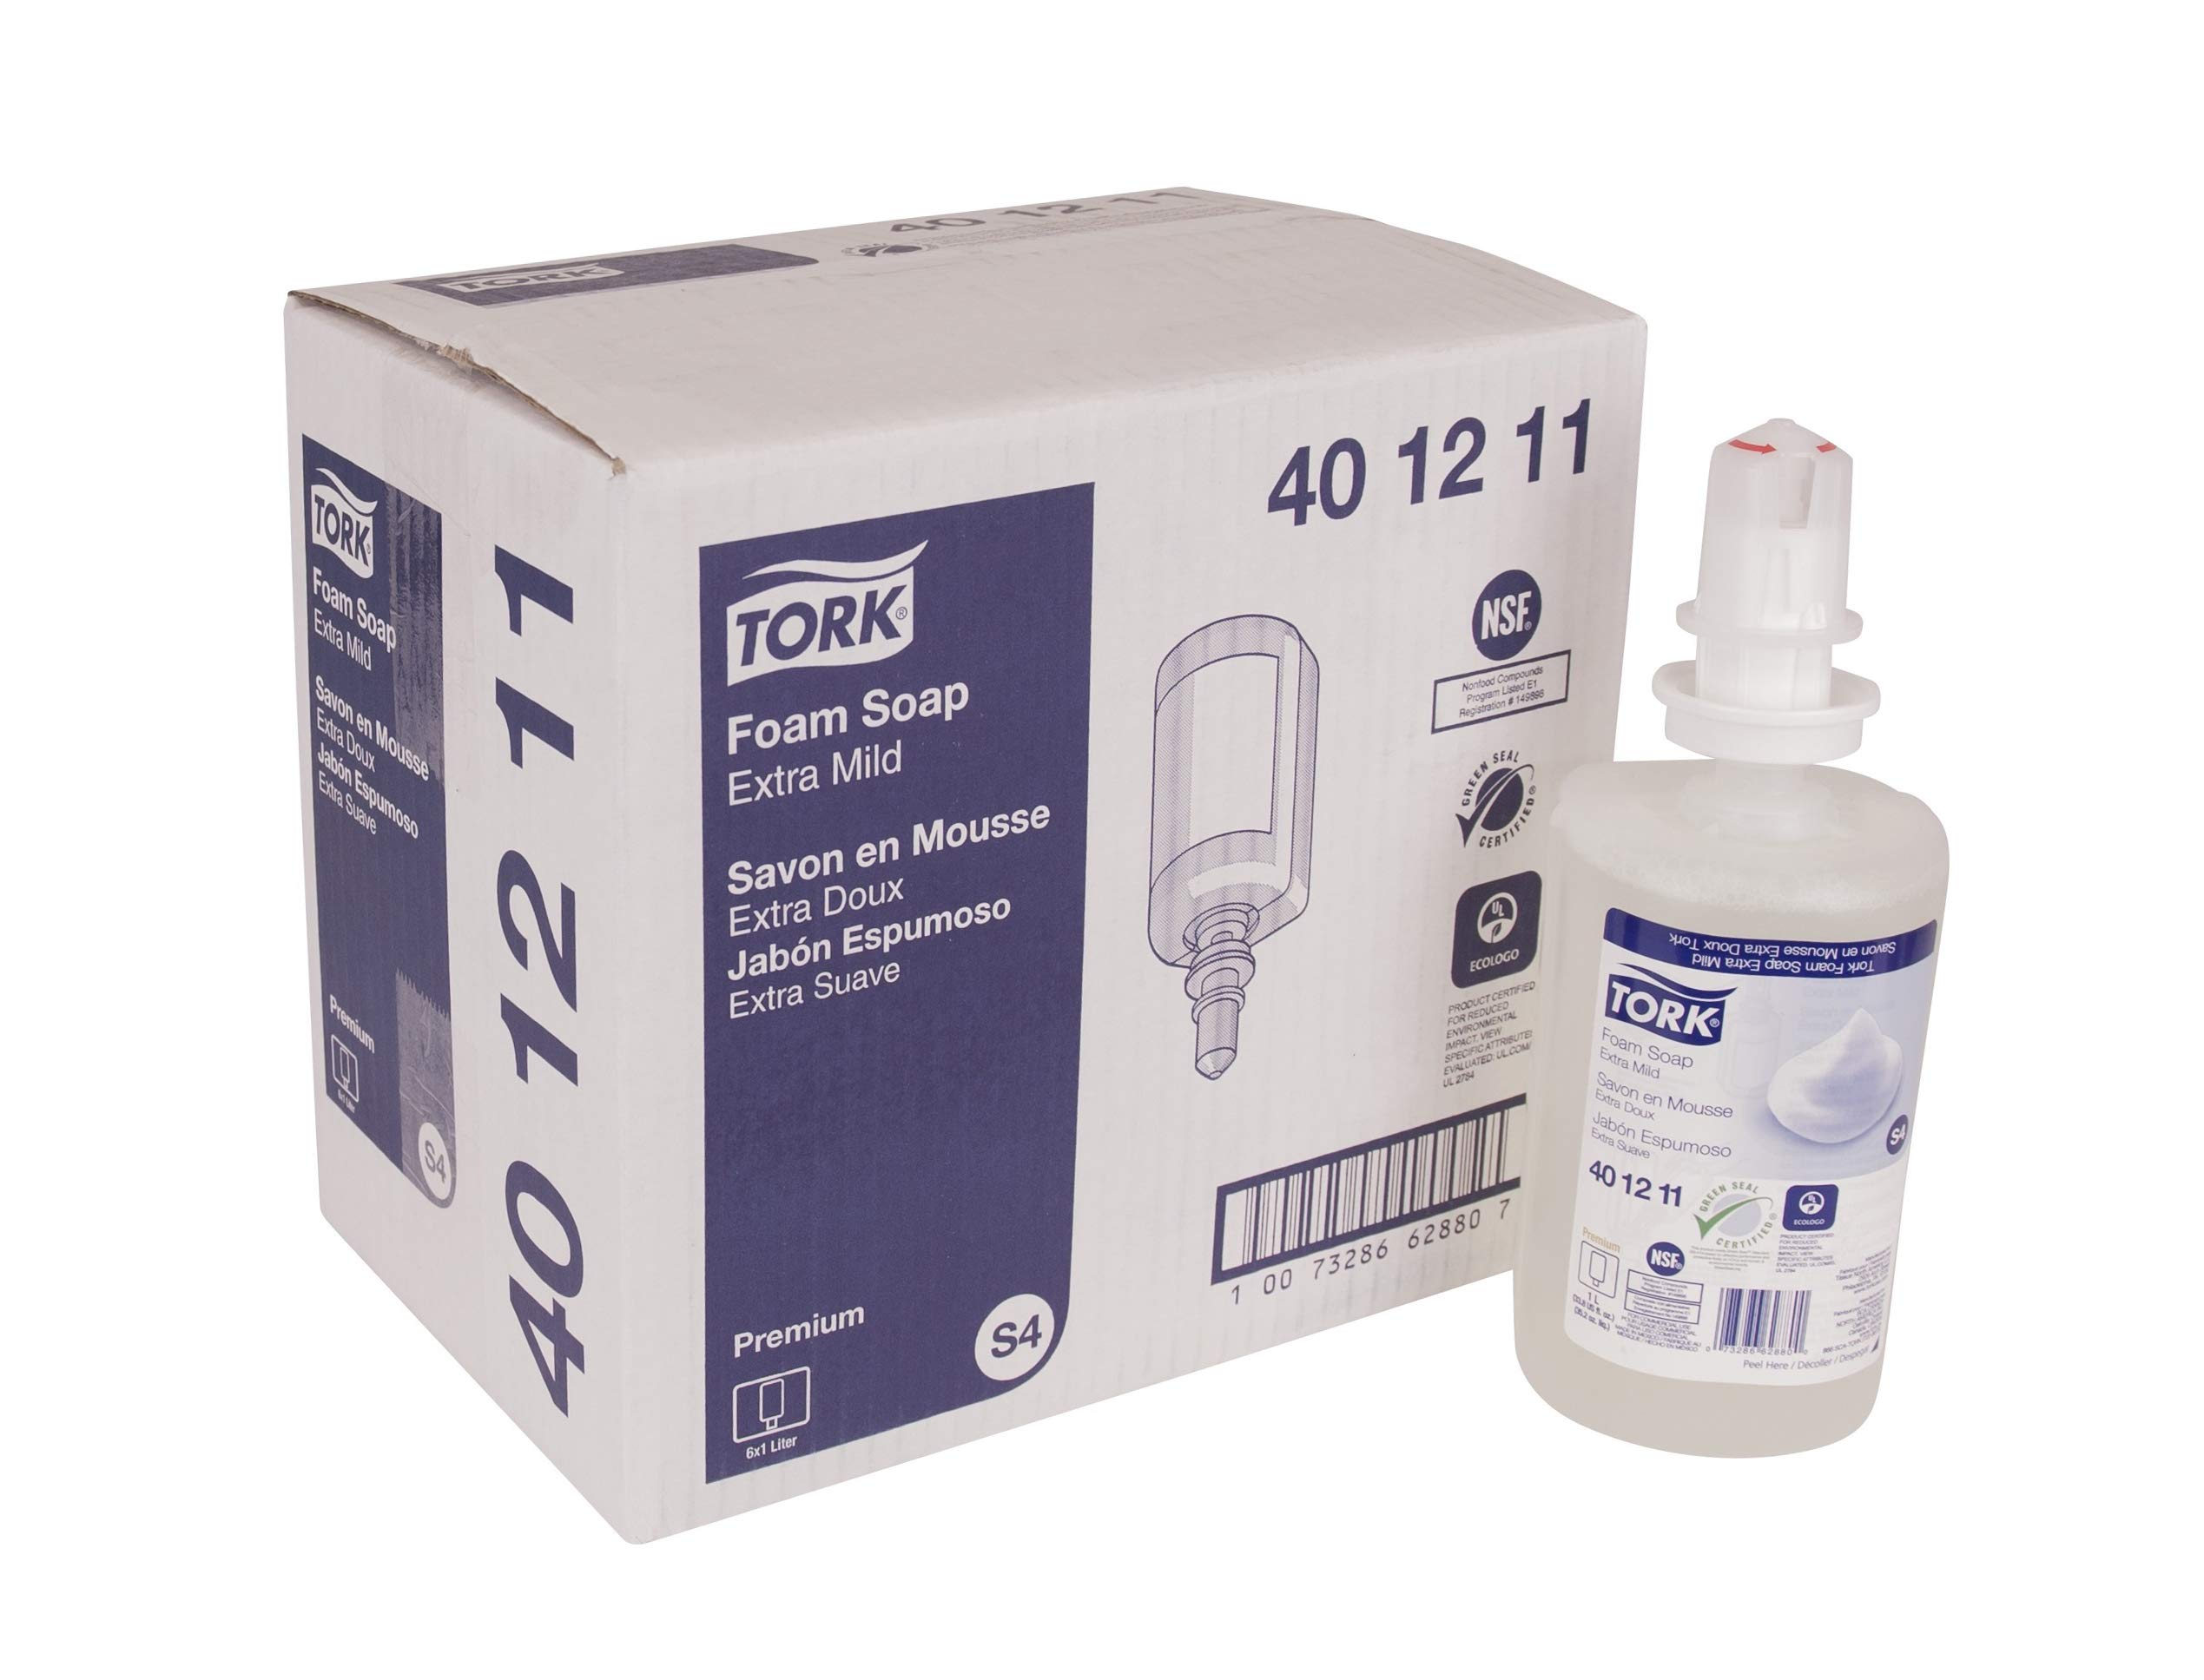 Tork 401211 Premium Extra Mild Foam Soap, Colorless, 1 Liter Bottle, for use with Tork 466000, 466100, 466200, 571501, 571508, 571600, 571608, 682830 or 682840